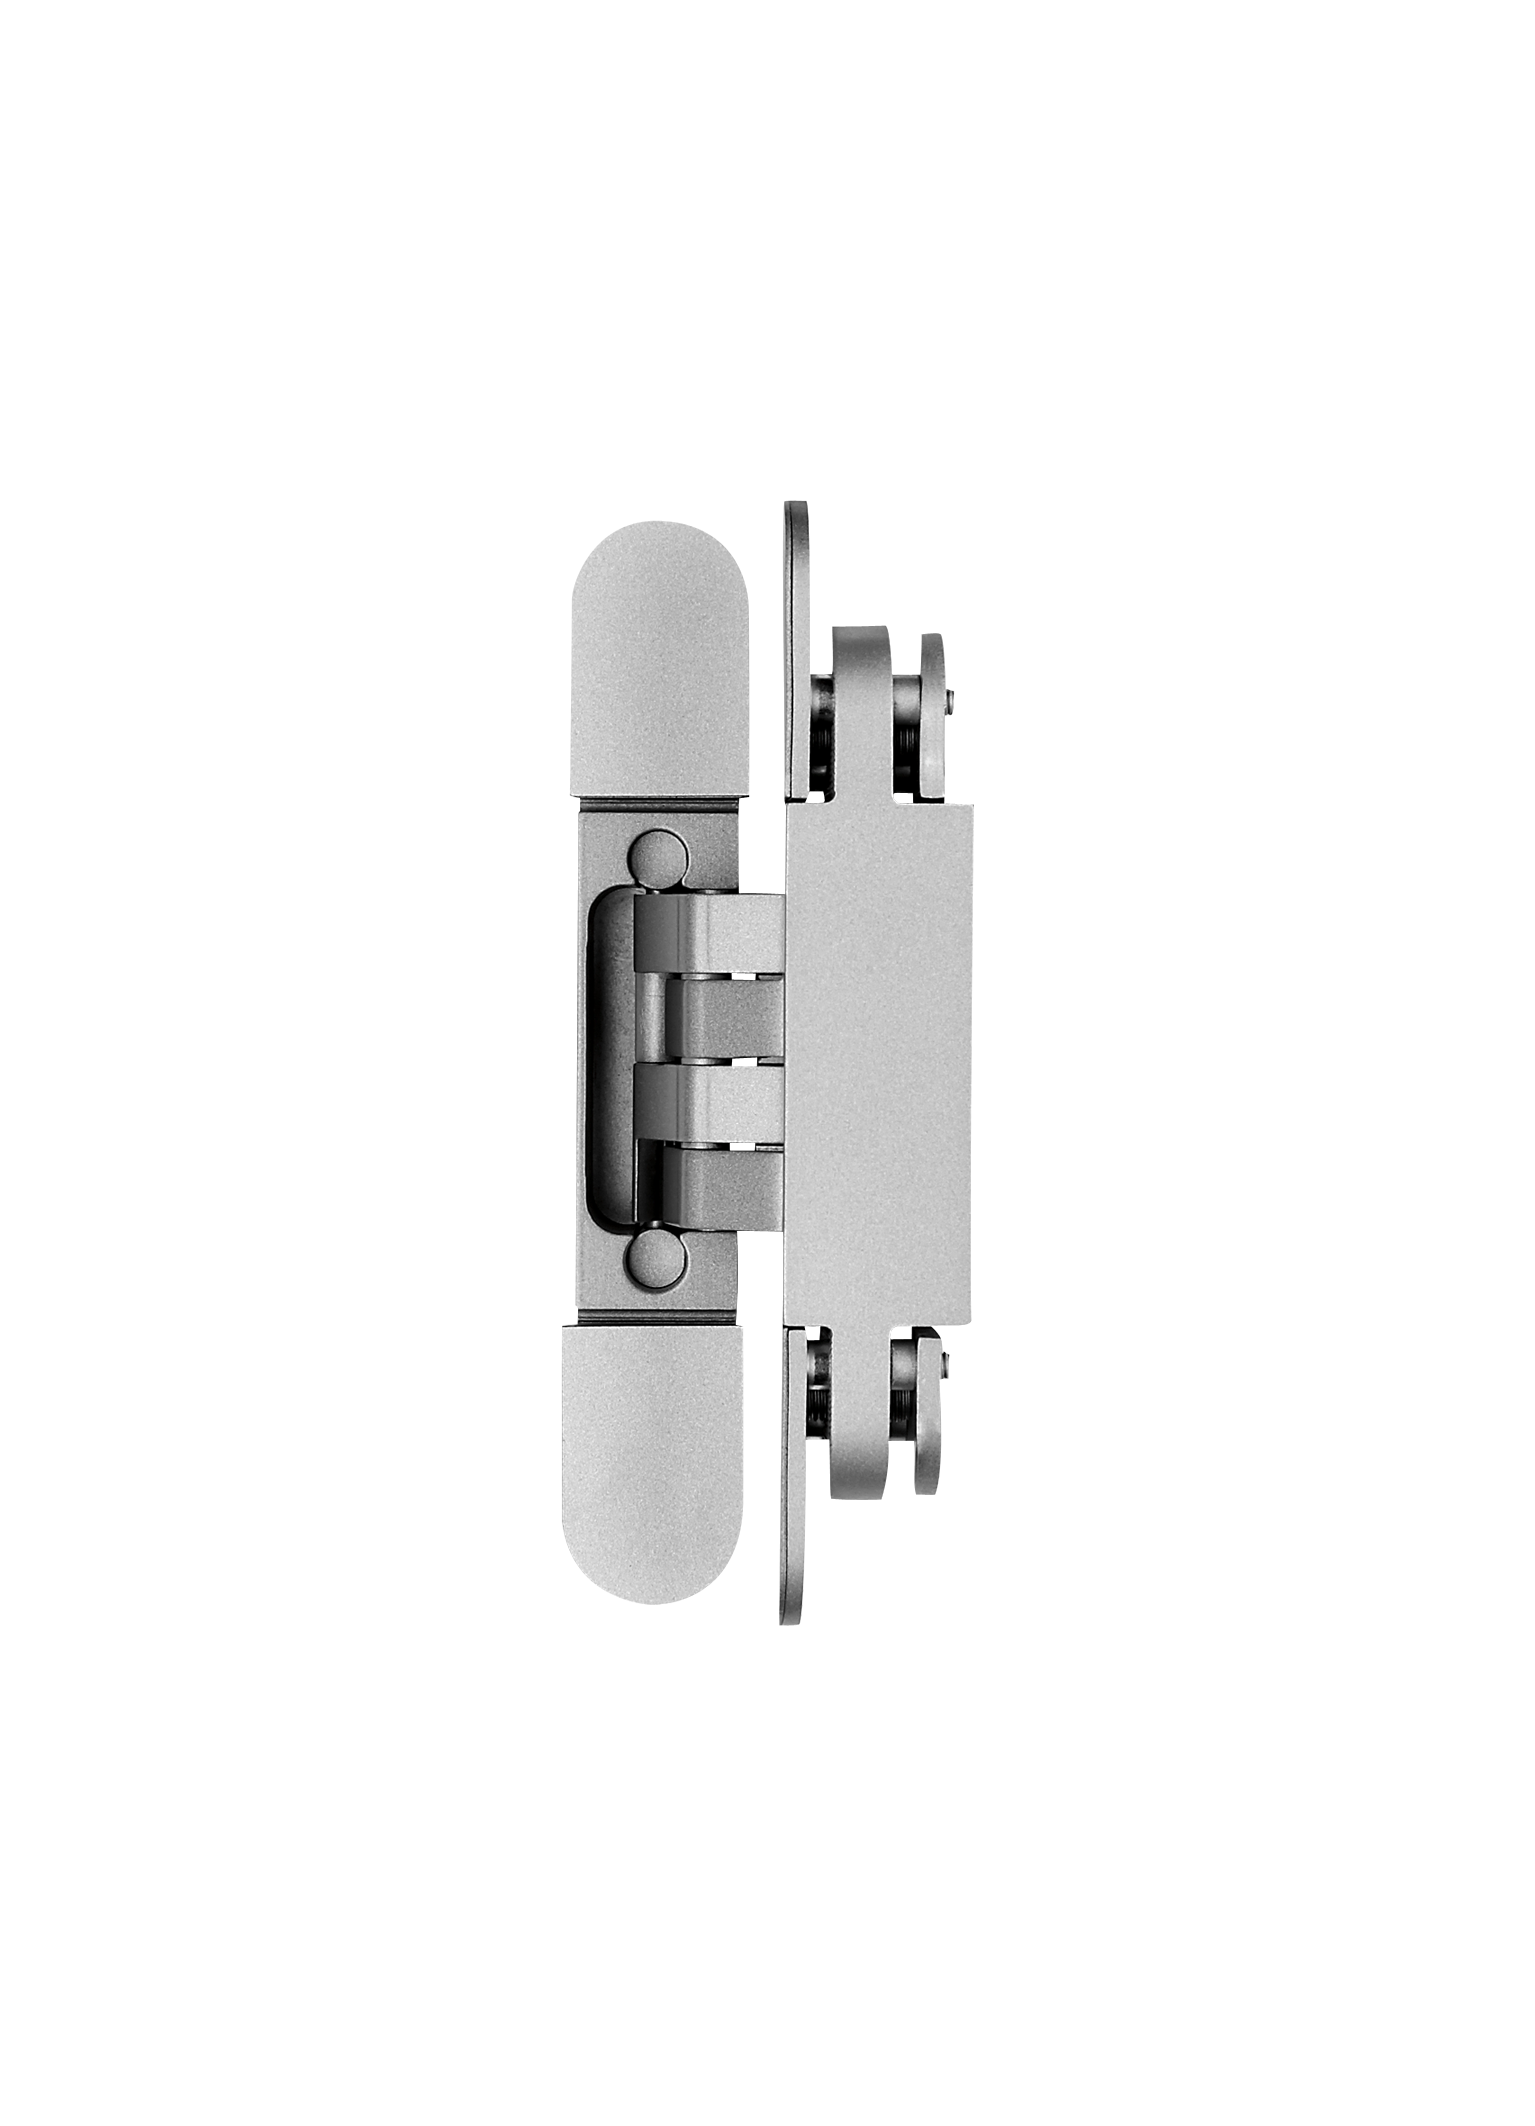 Bartels Concealed Hinge Residential Products Online